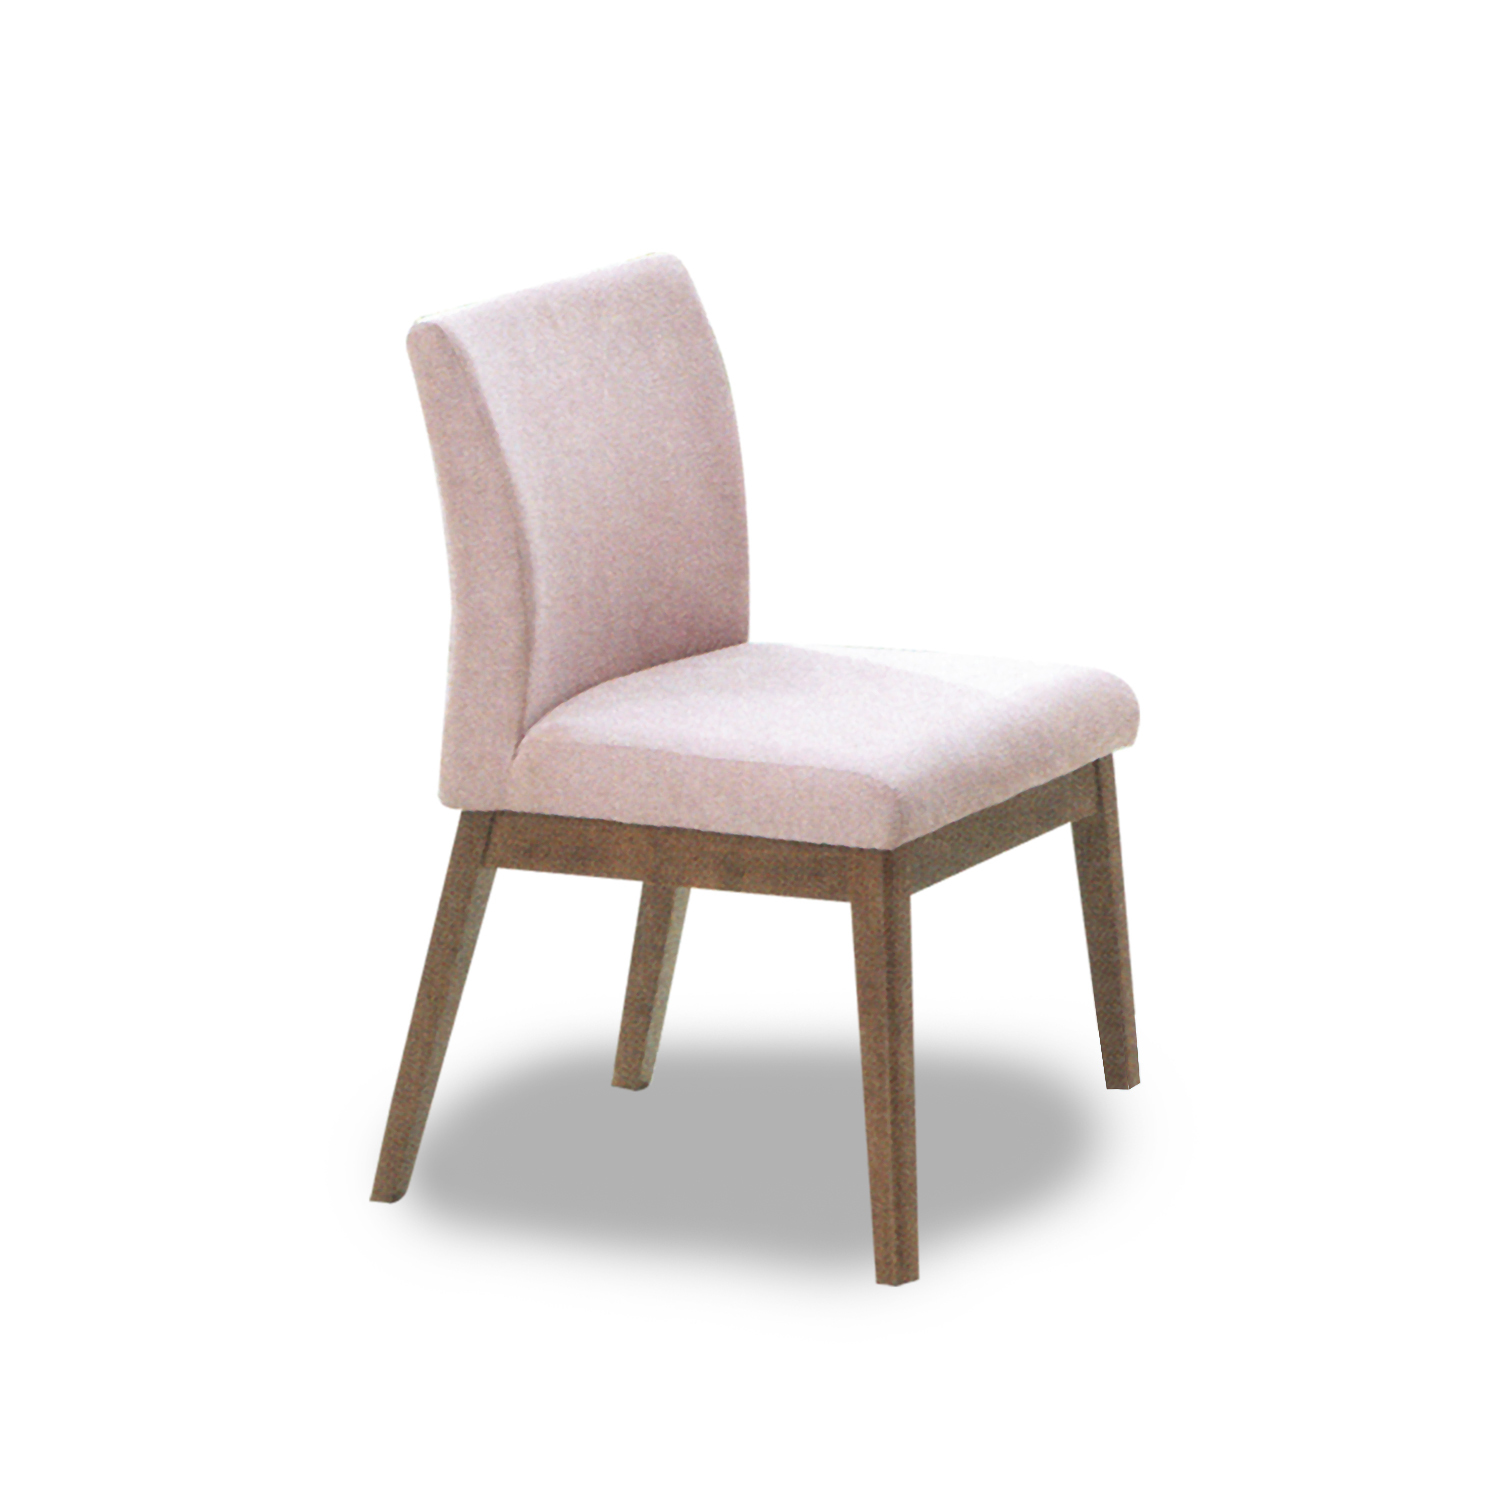 dining chair 3766 pink.jpg